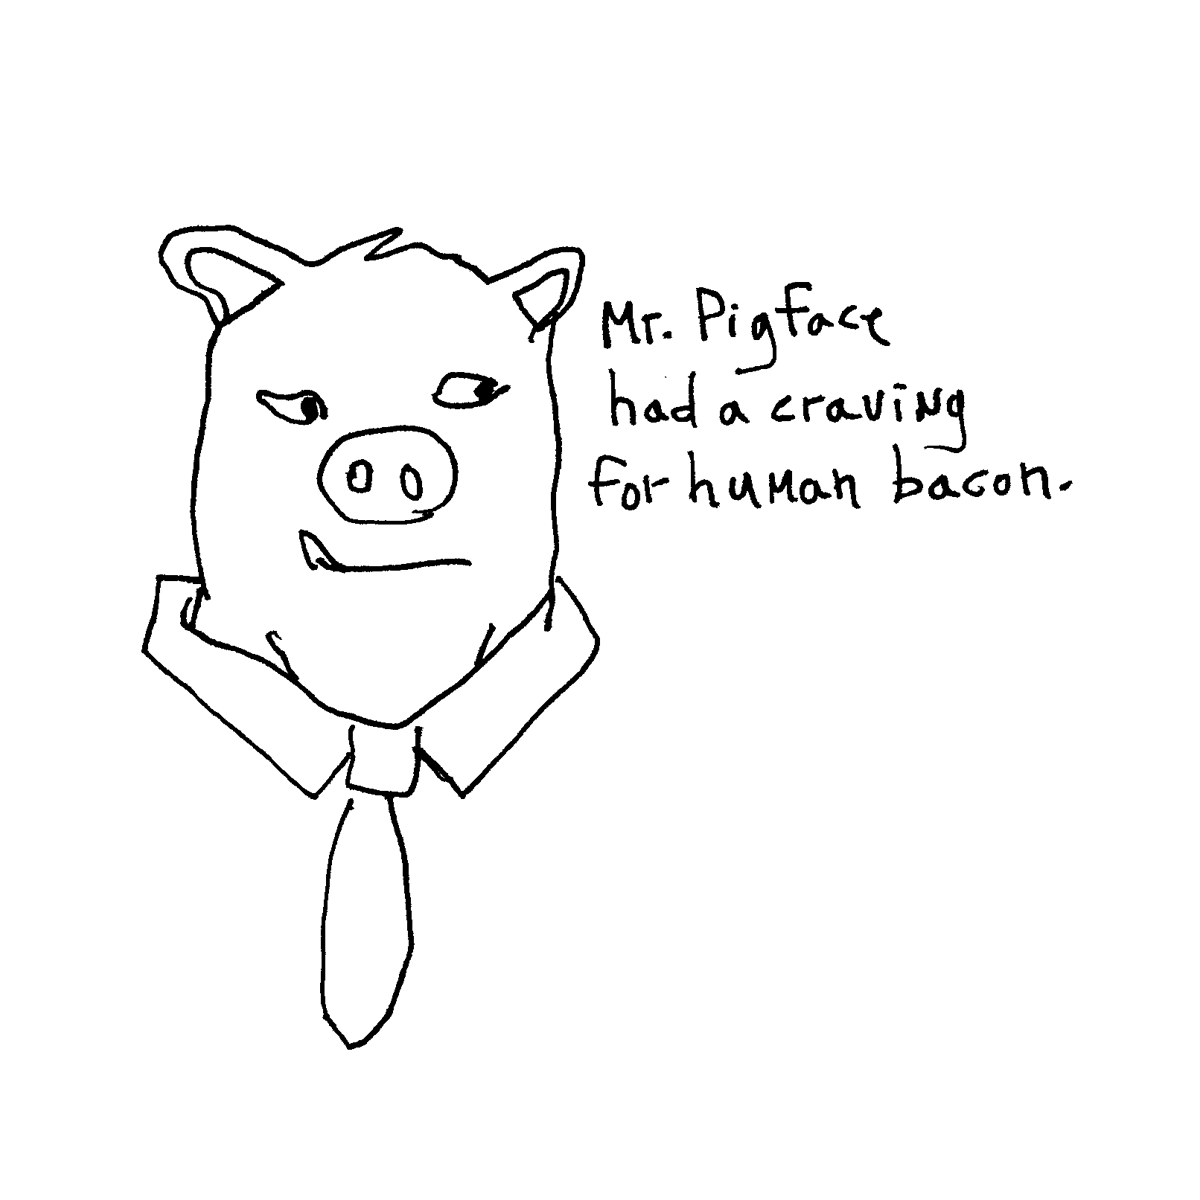 mr pig face cartoon doodle